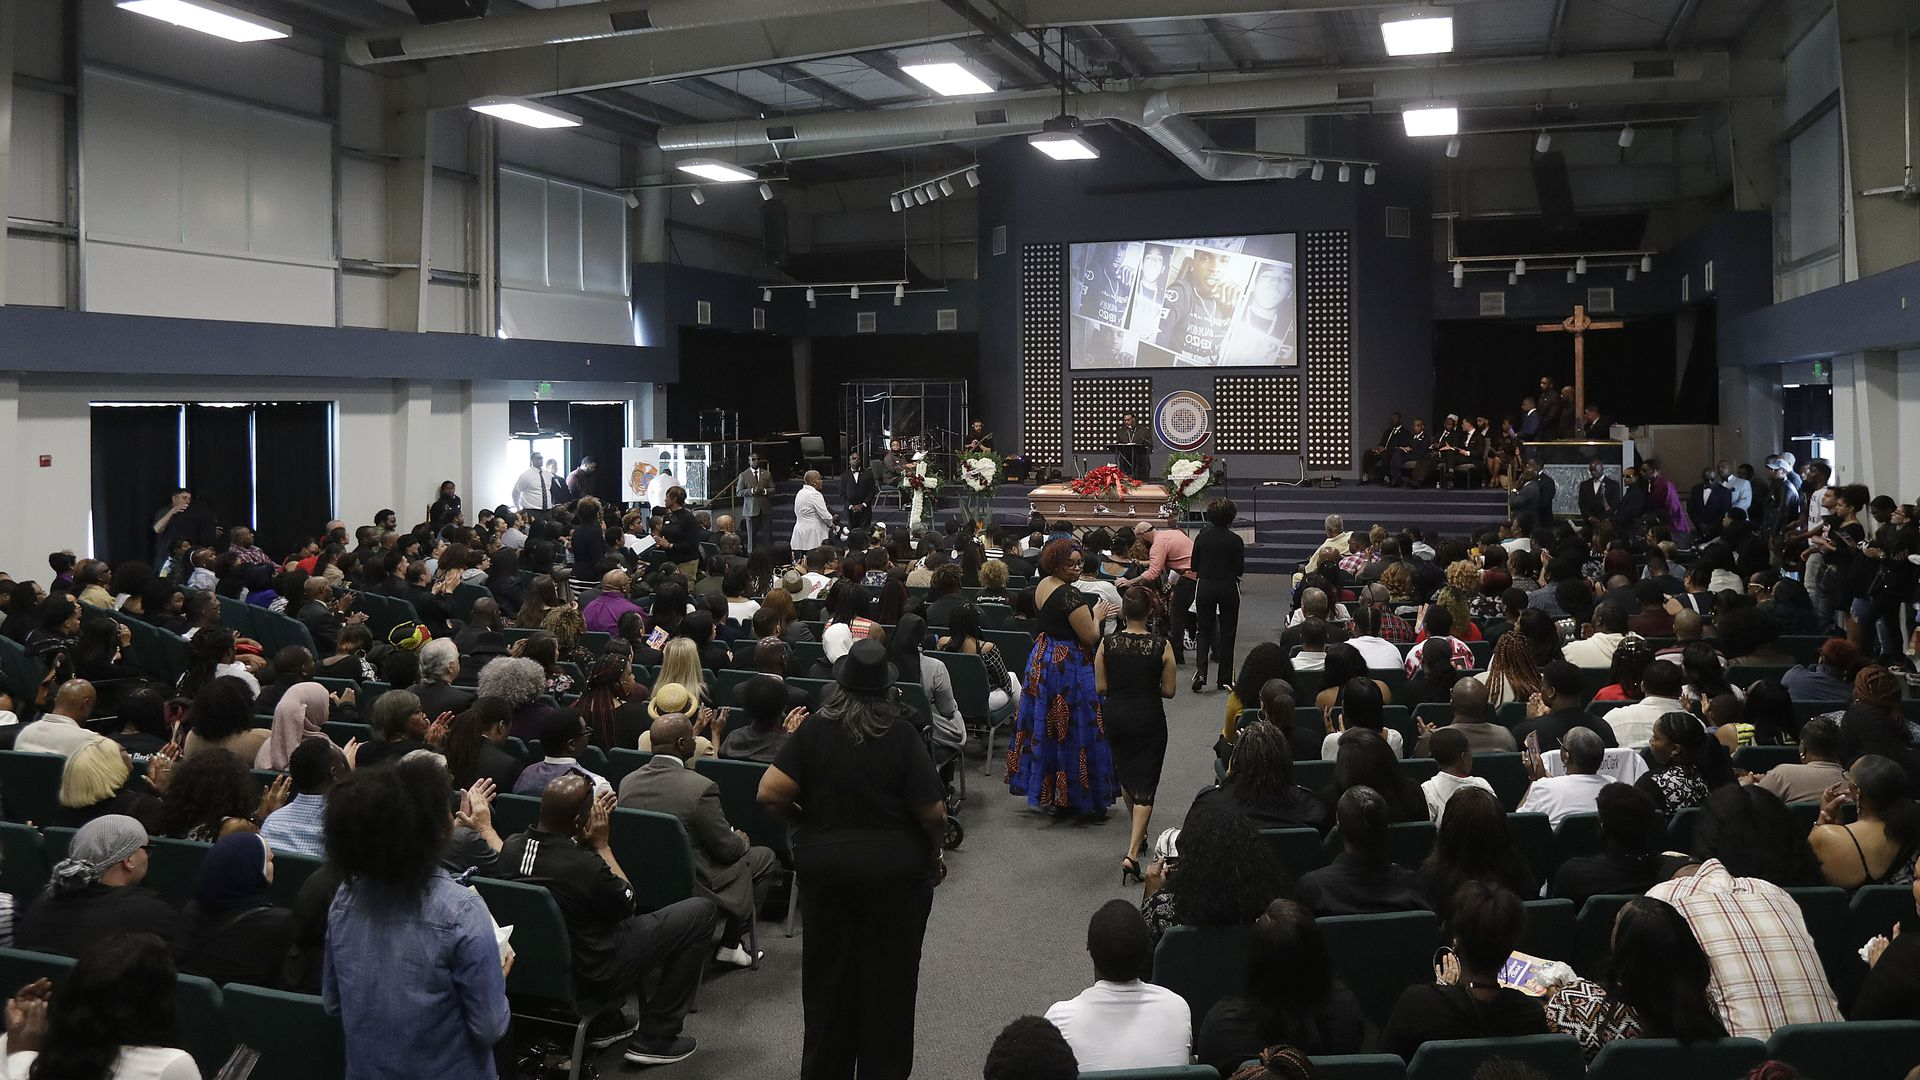 Funeral services for Stephon Clark